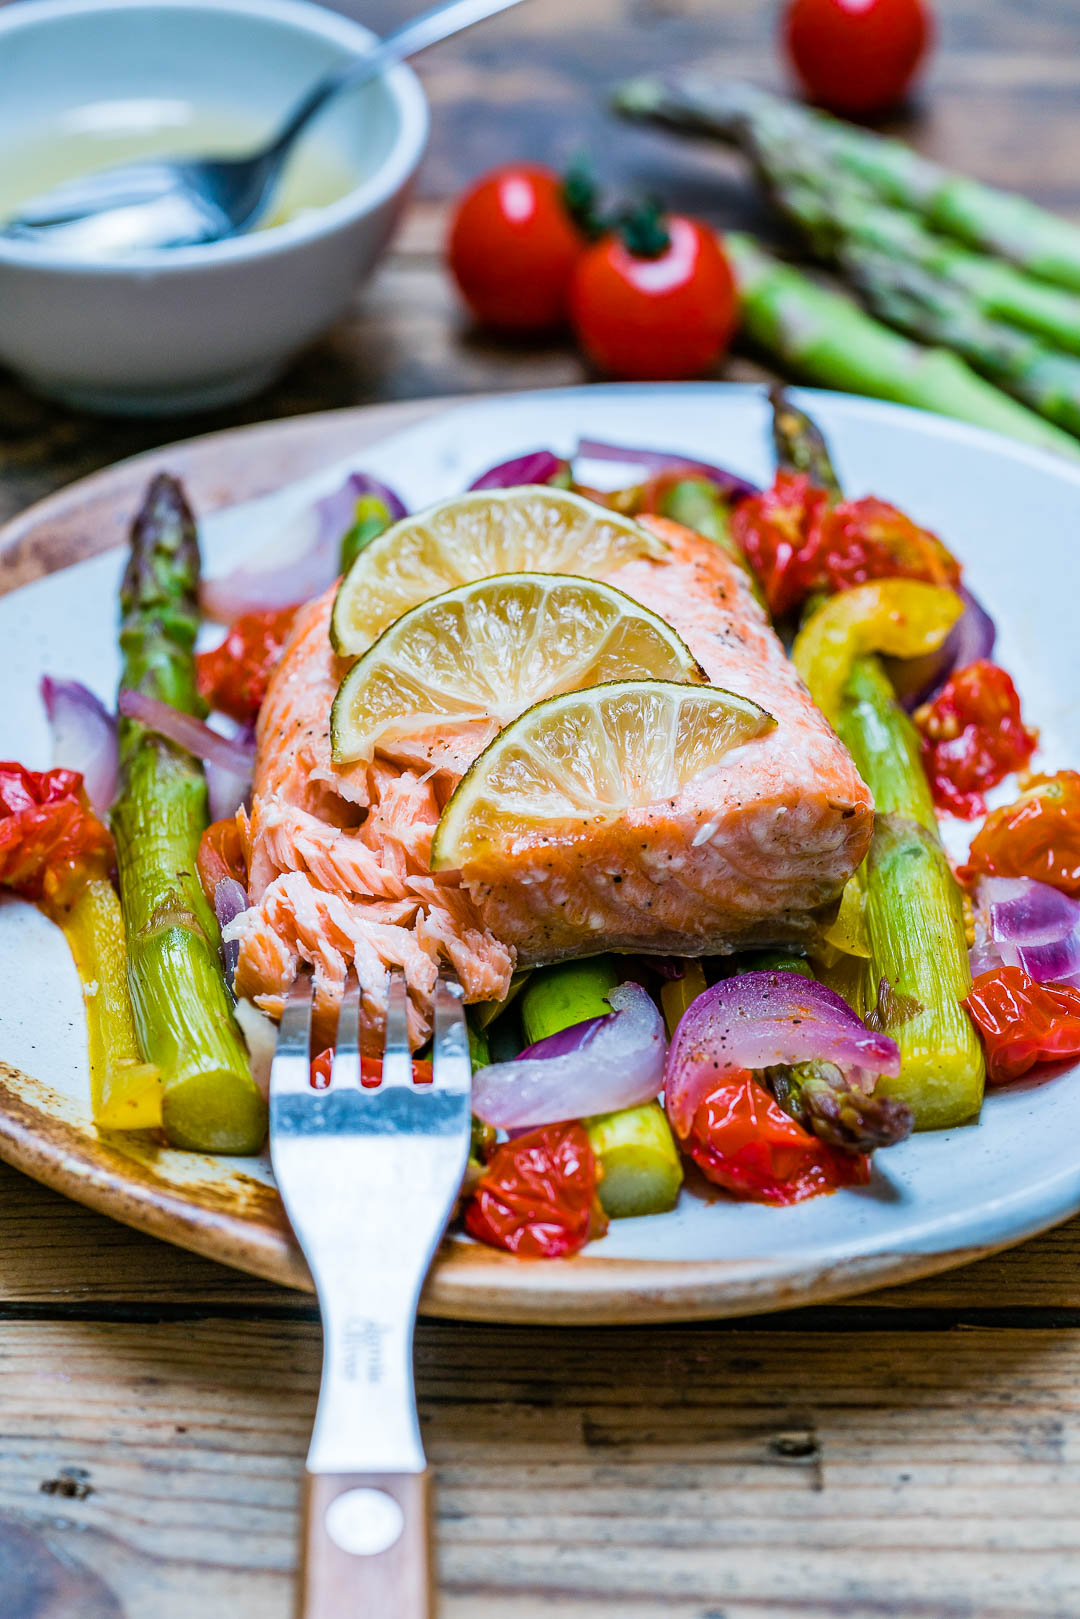 Easy Baked Salmon and Veggies Recipe - How to Cook Salmon In The Oven-11